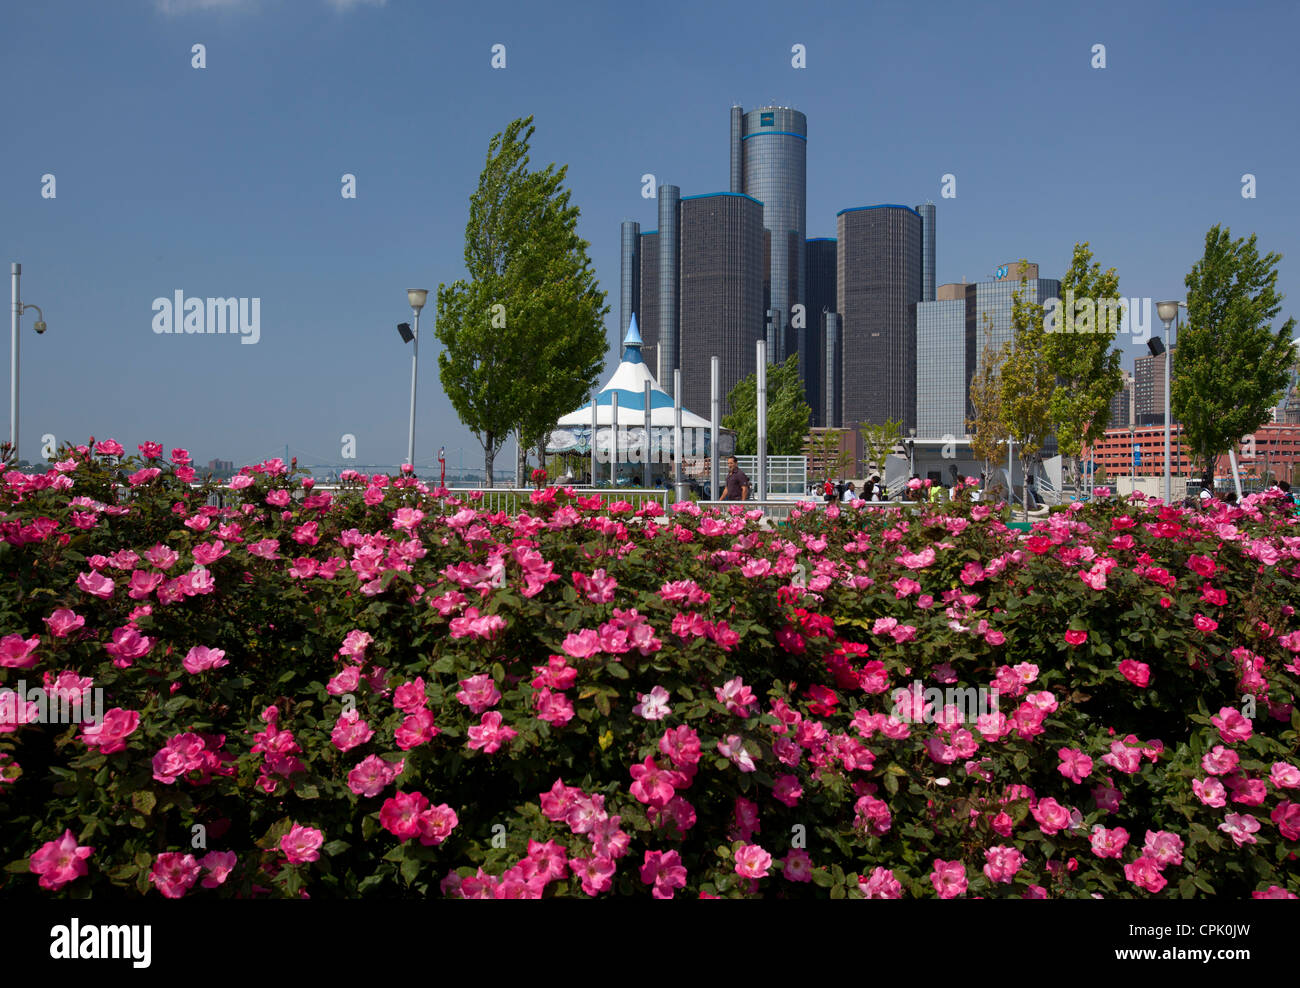 The Renaissance Center, headquarters of General Motors, photographed from William G. Milliken State Park - Stock Image